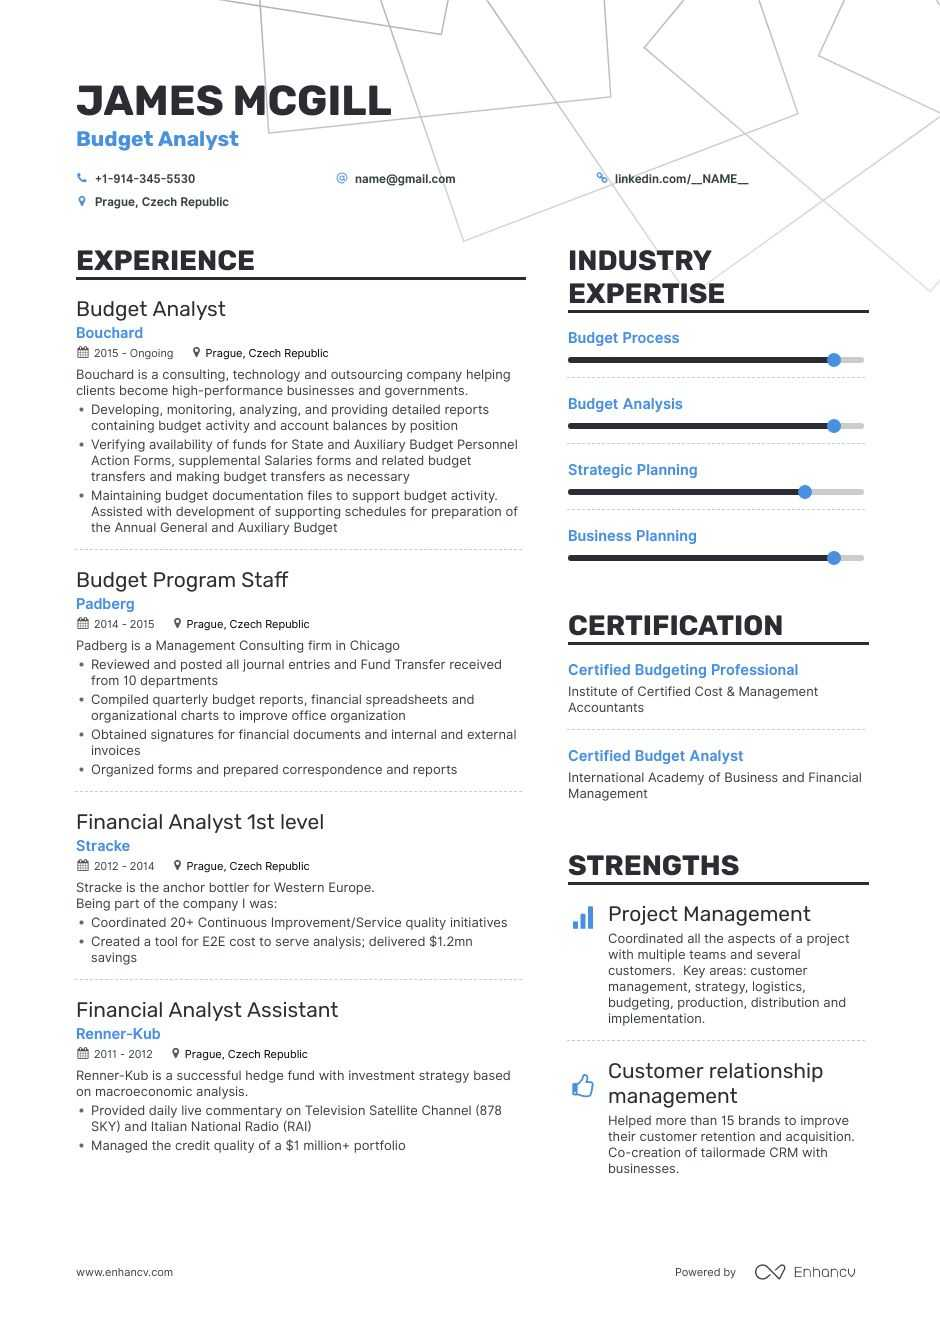 budget analyst resume samples and writing guide for enhancv financial planning analysis Resume Financial Planning And Analysis Resume